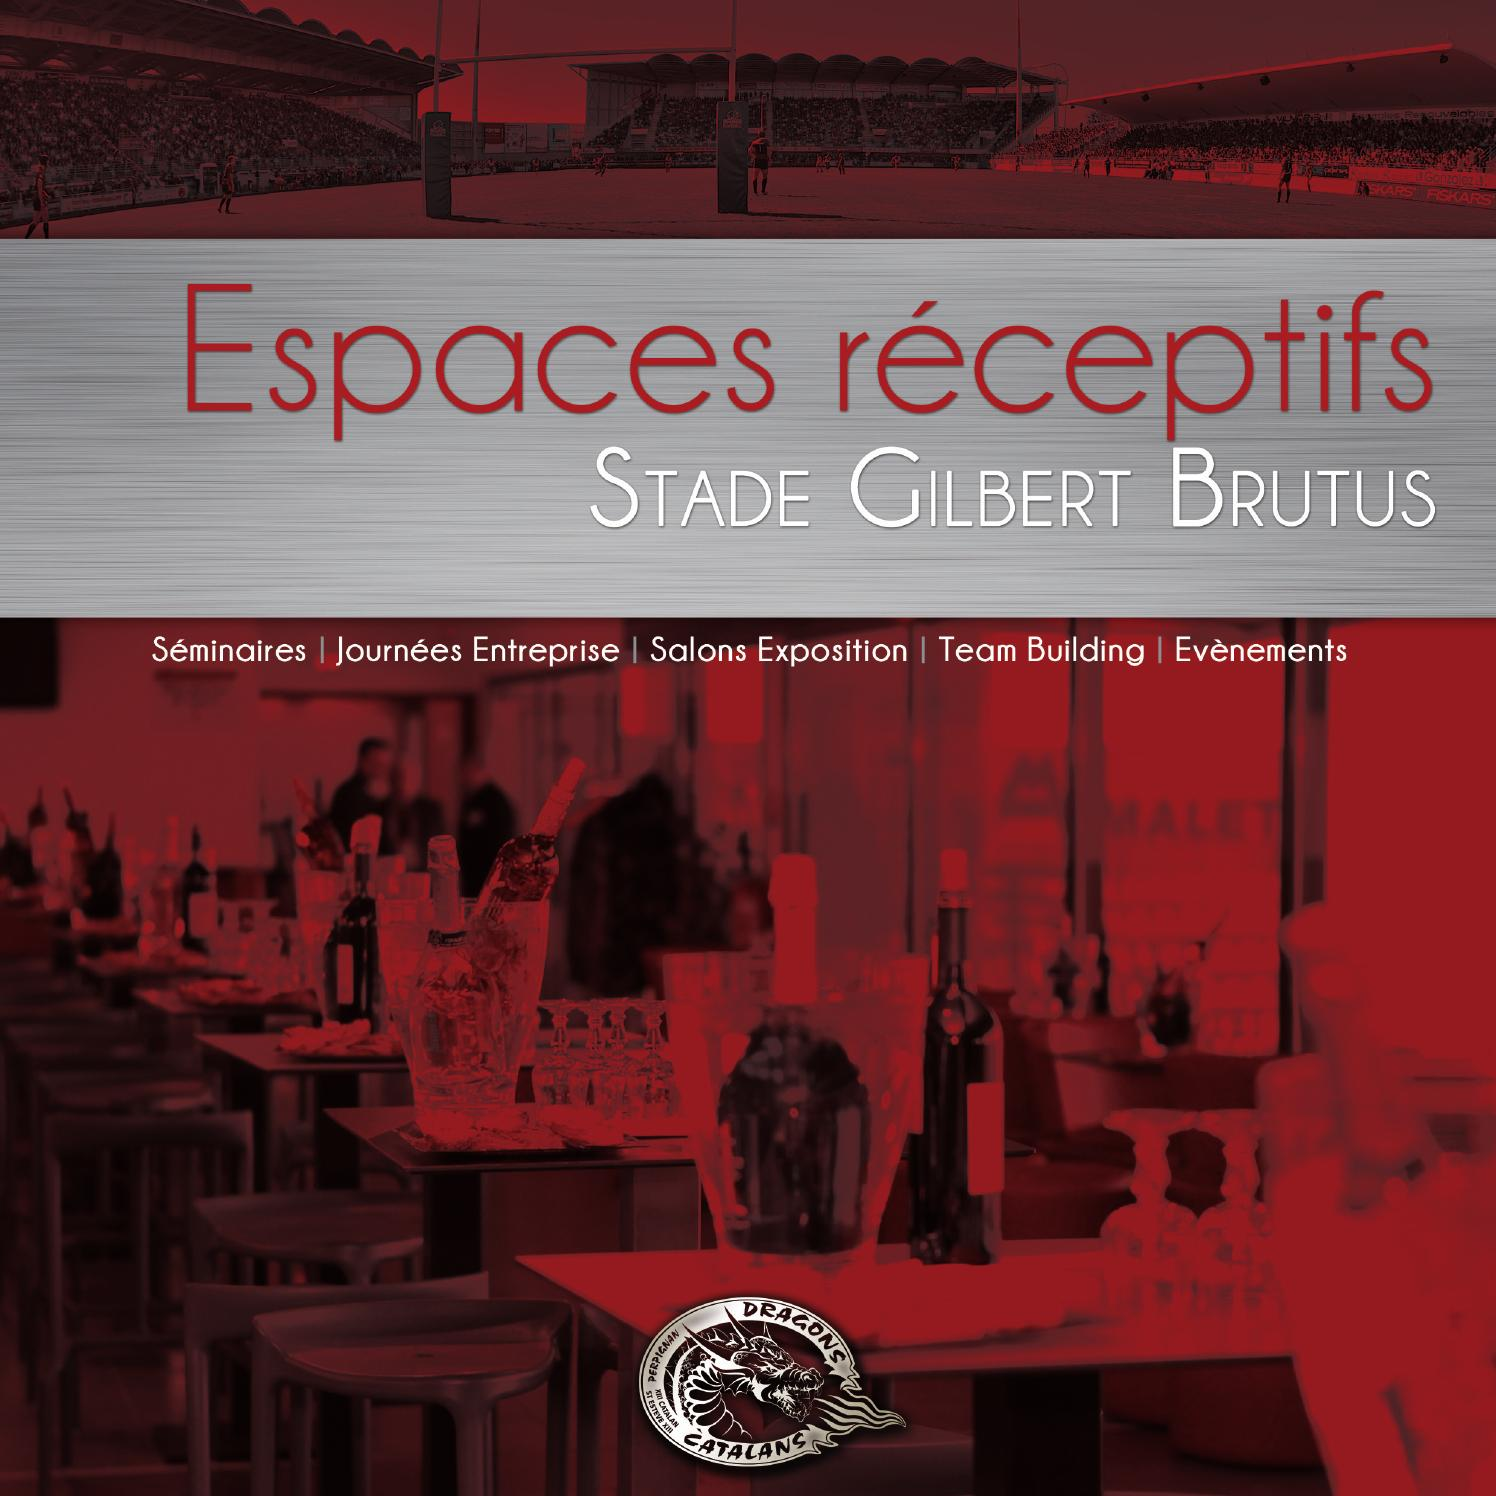 Dragons catalans espaces r ceptifs 2014 by square partners s a issuu - Piscine gilbert brutus perpignan ...